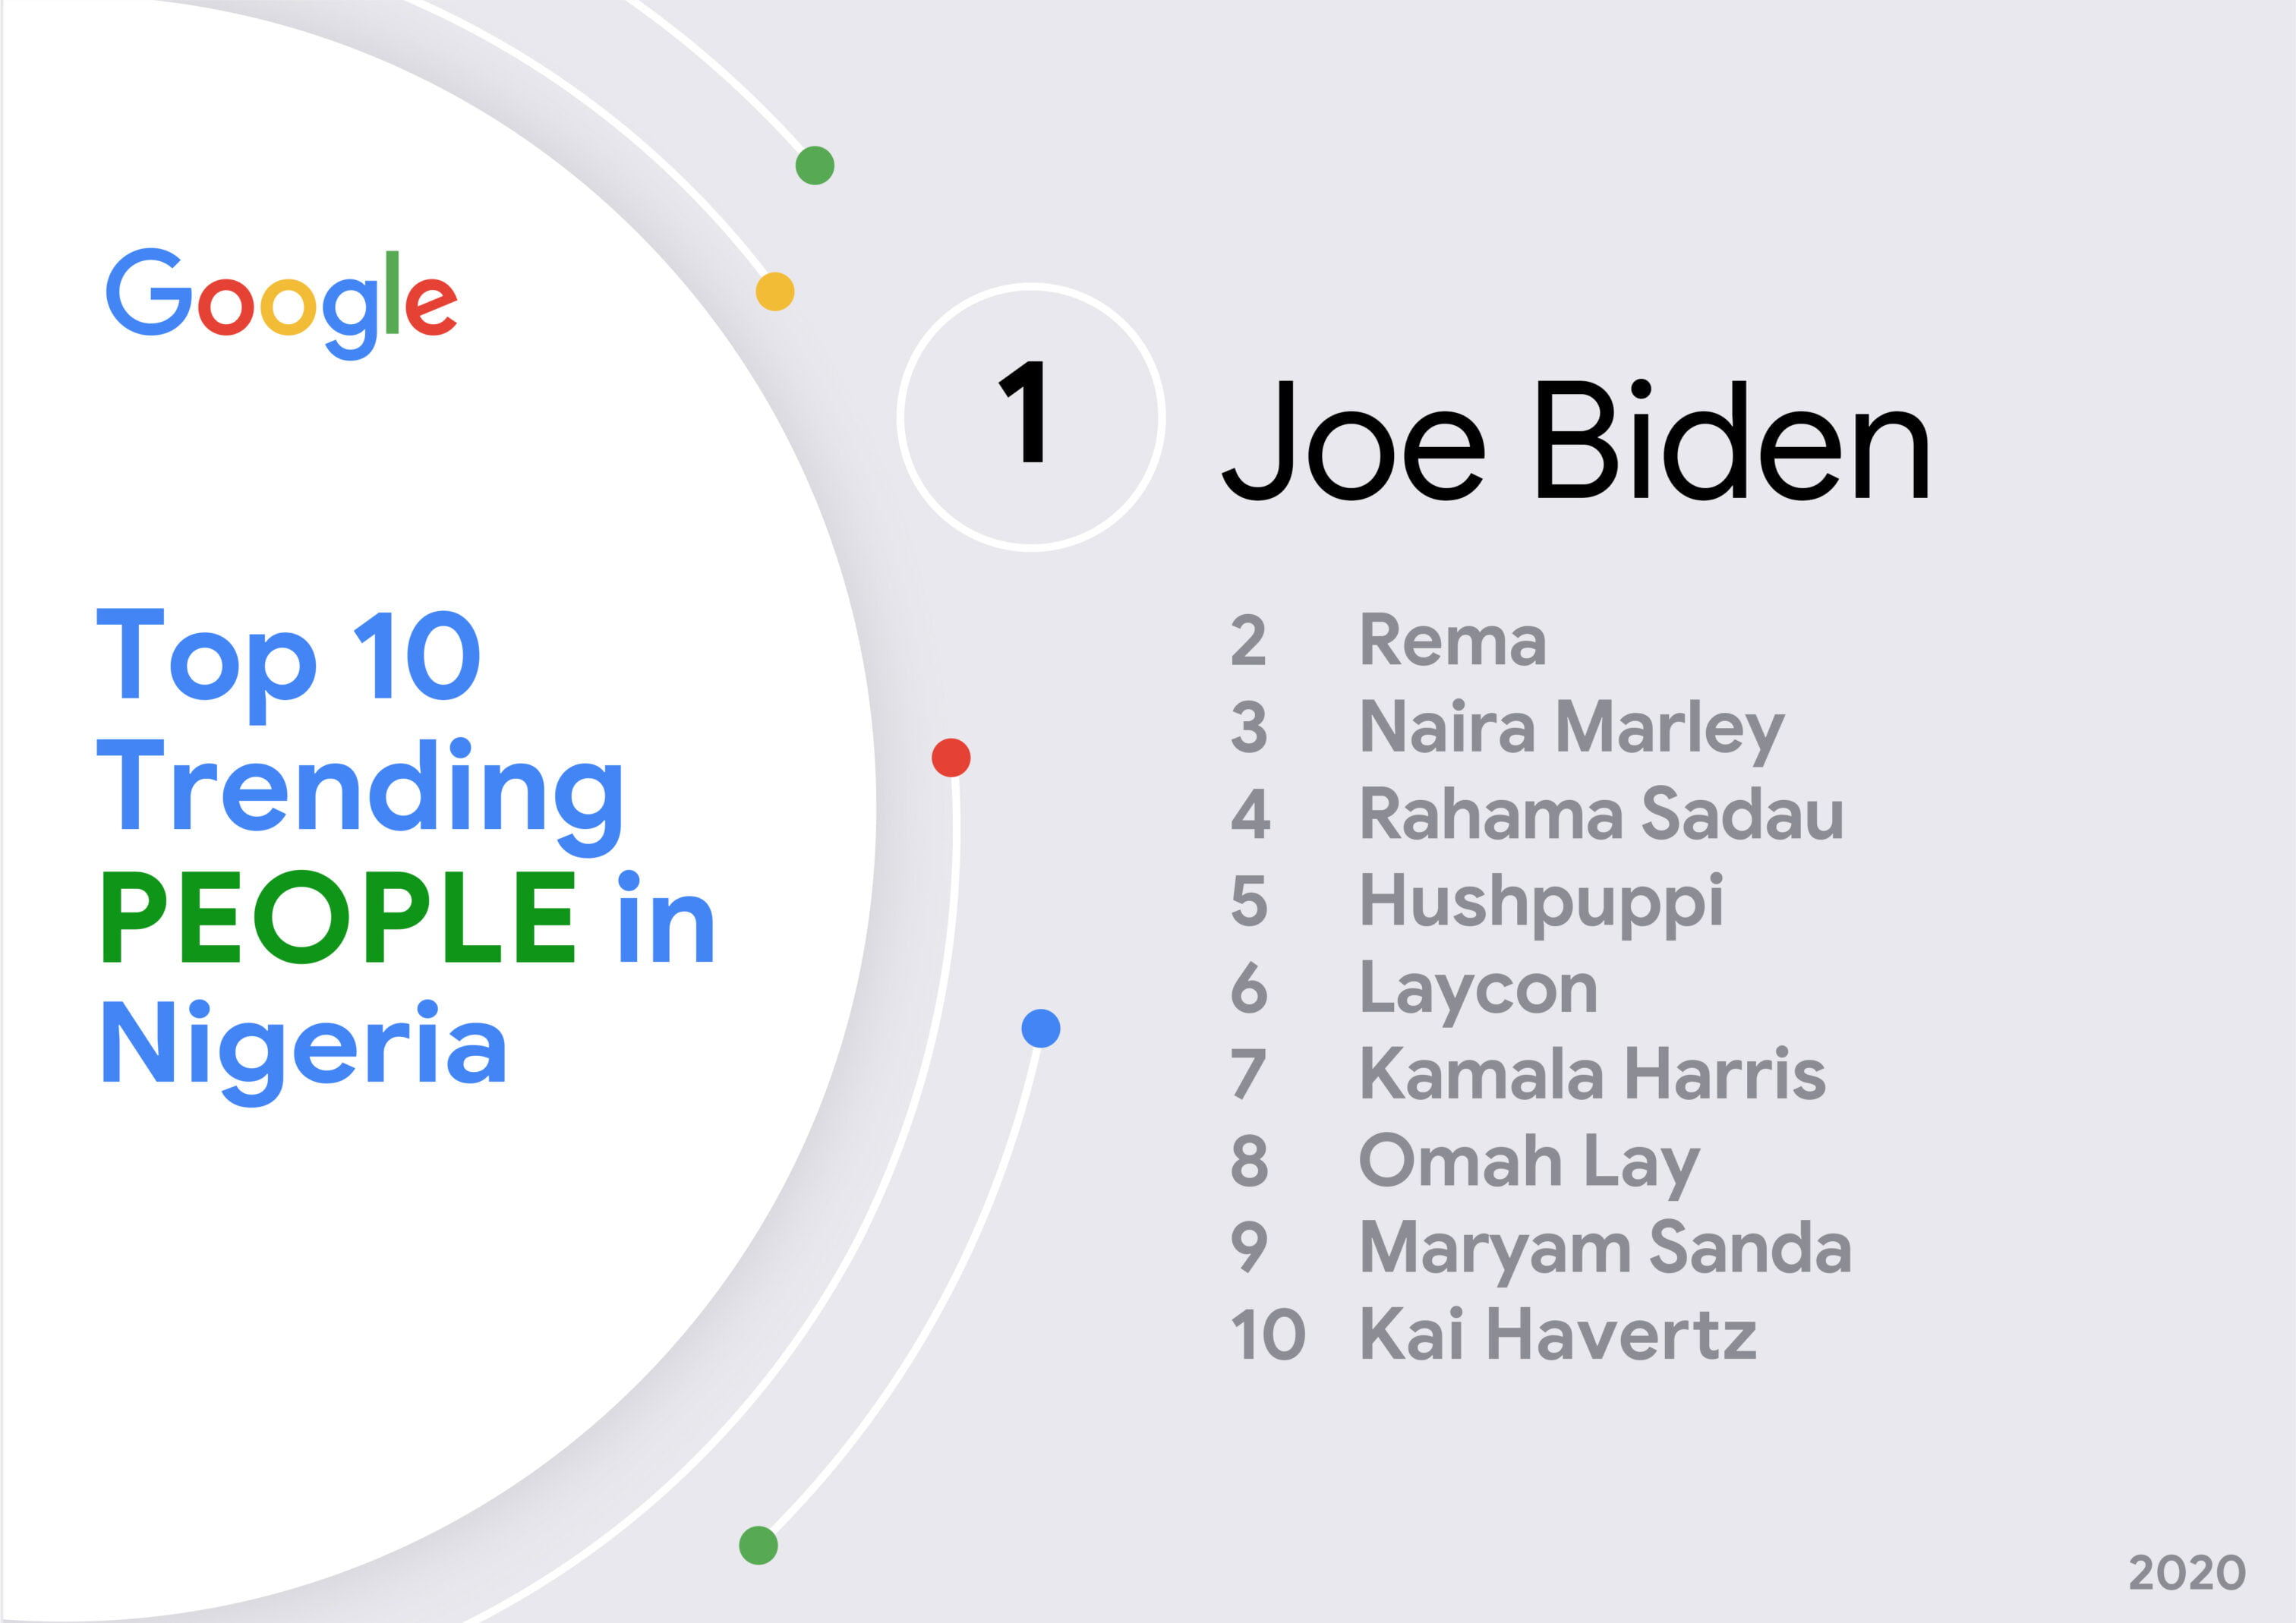 top trending people on Google search